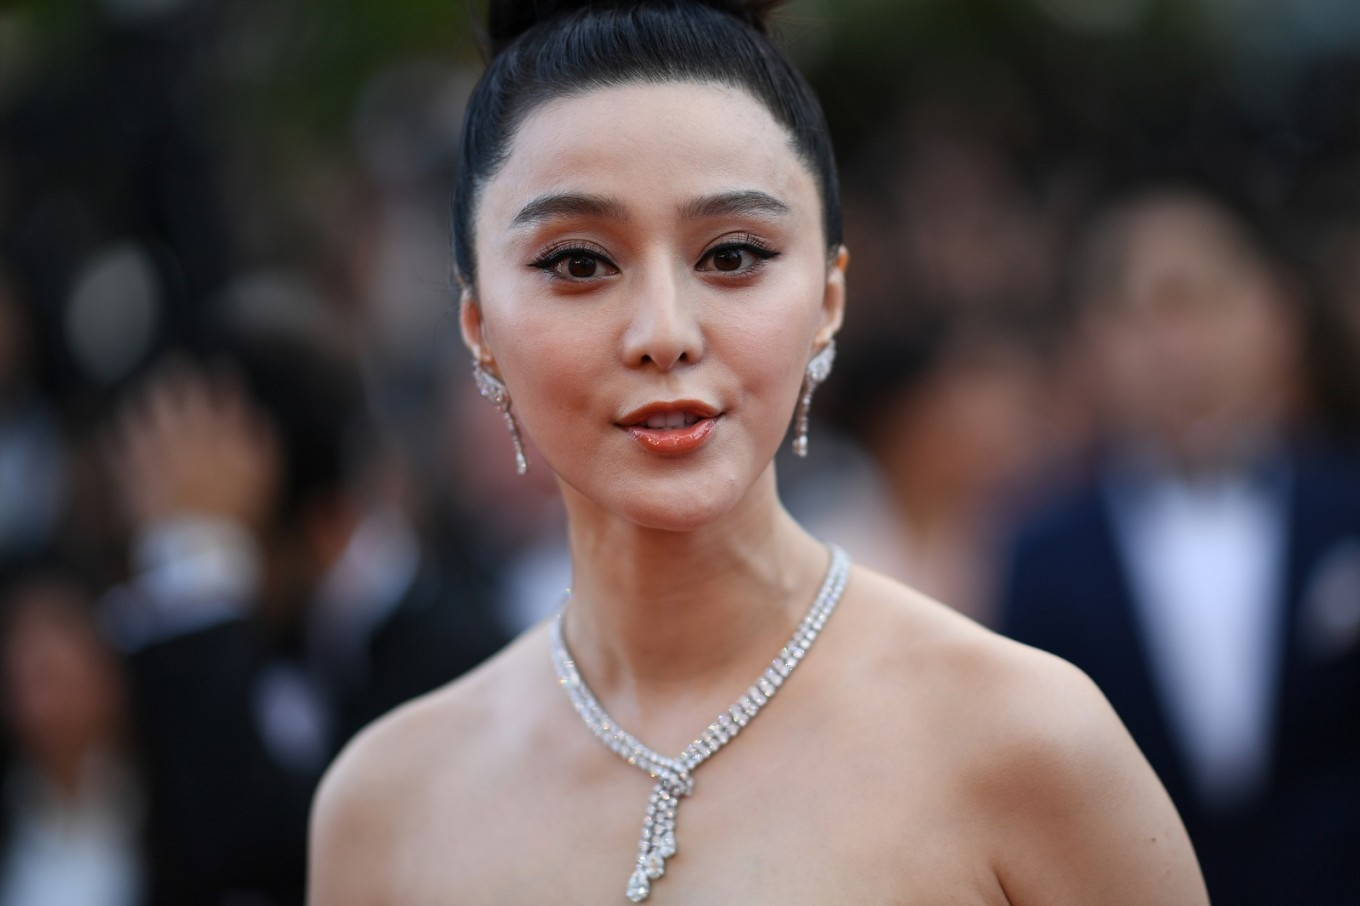 Vanished China star Fan Bingbing last in 'social responsibility' ranking